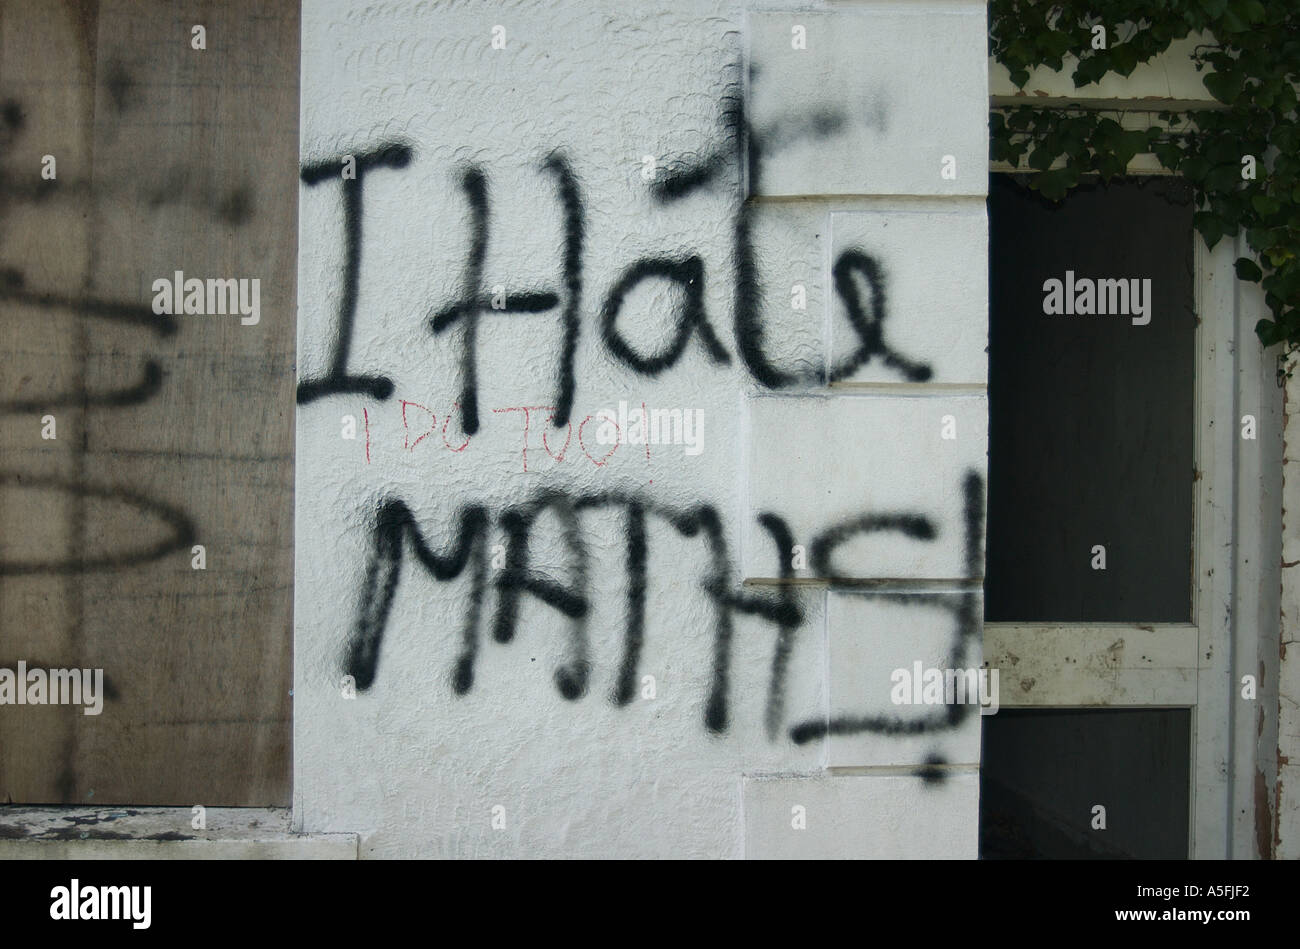 Maths Funny Stockfotos & Maths Funny Bilder - Alamy